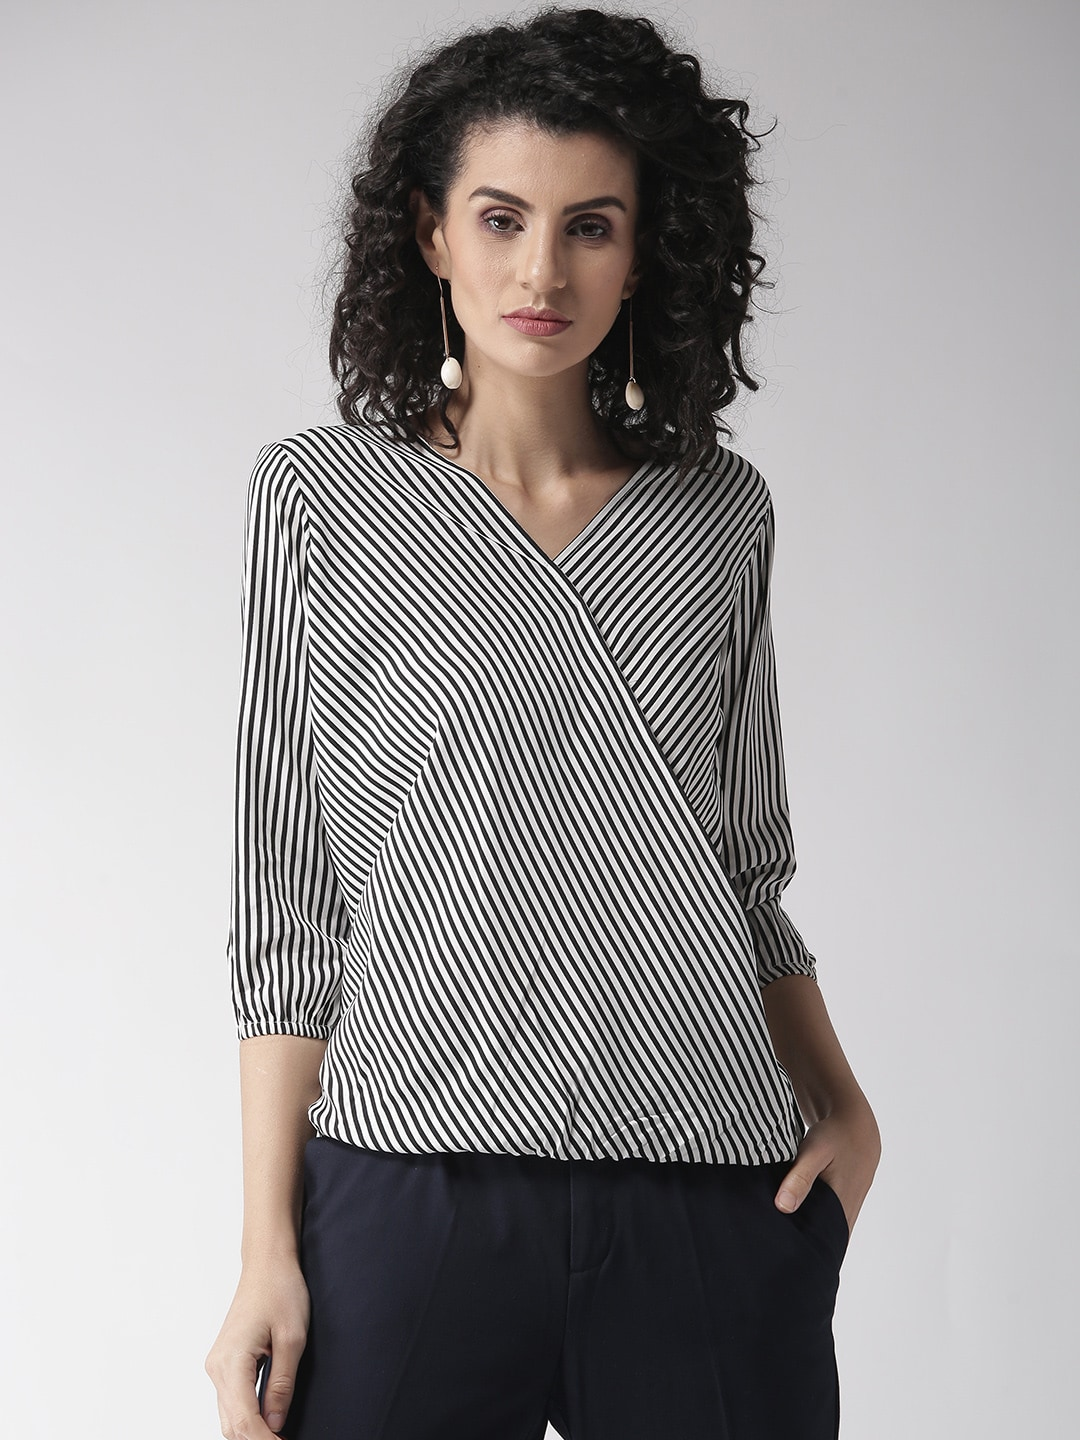 9f2467e77dbd7 Puff Sleeves Apparel - Buy Puff Sleeves Apparel online in India